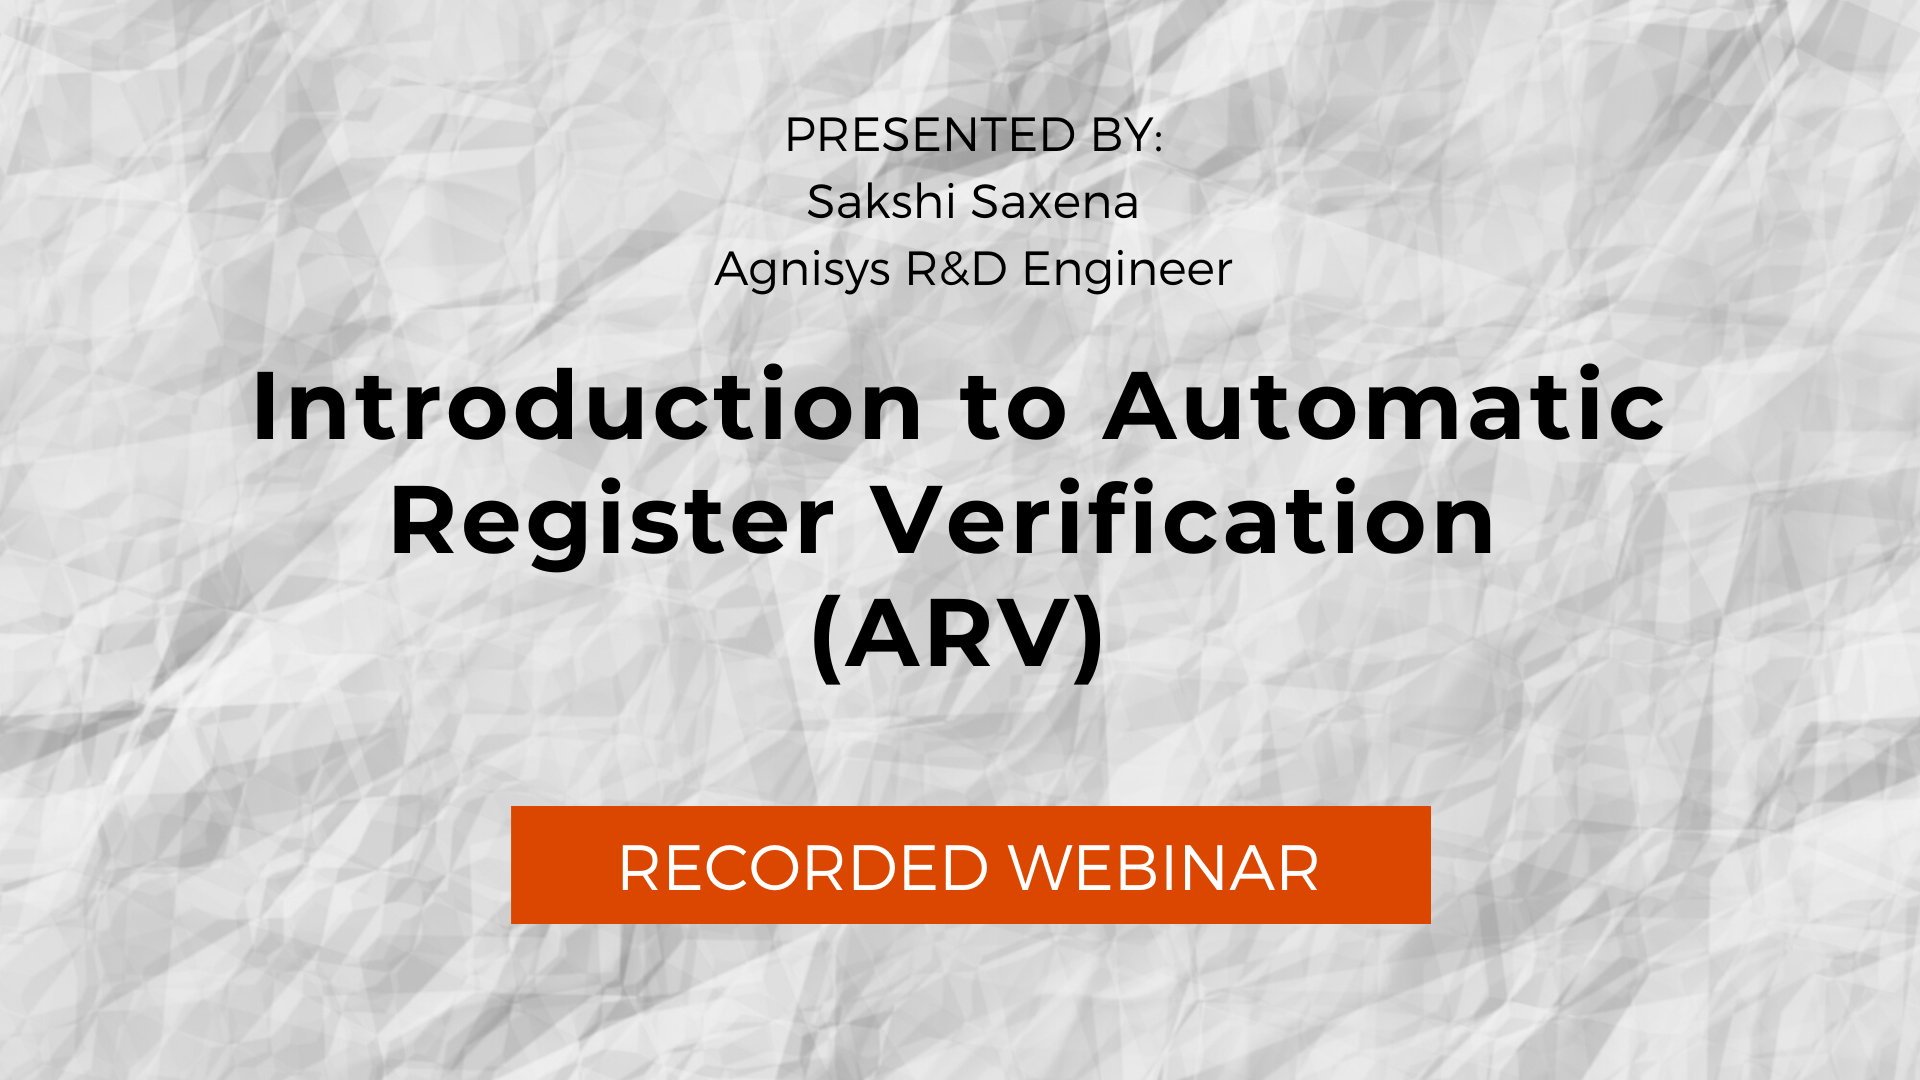 Introduction to Automatic Register Verification (ARV)